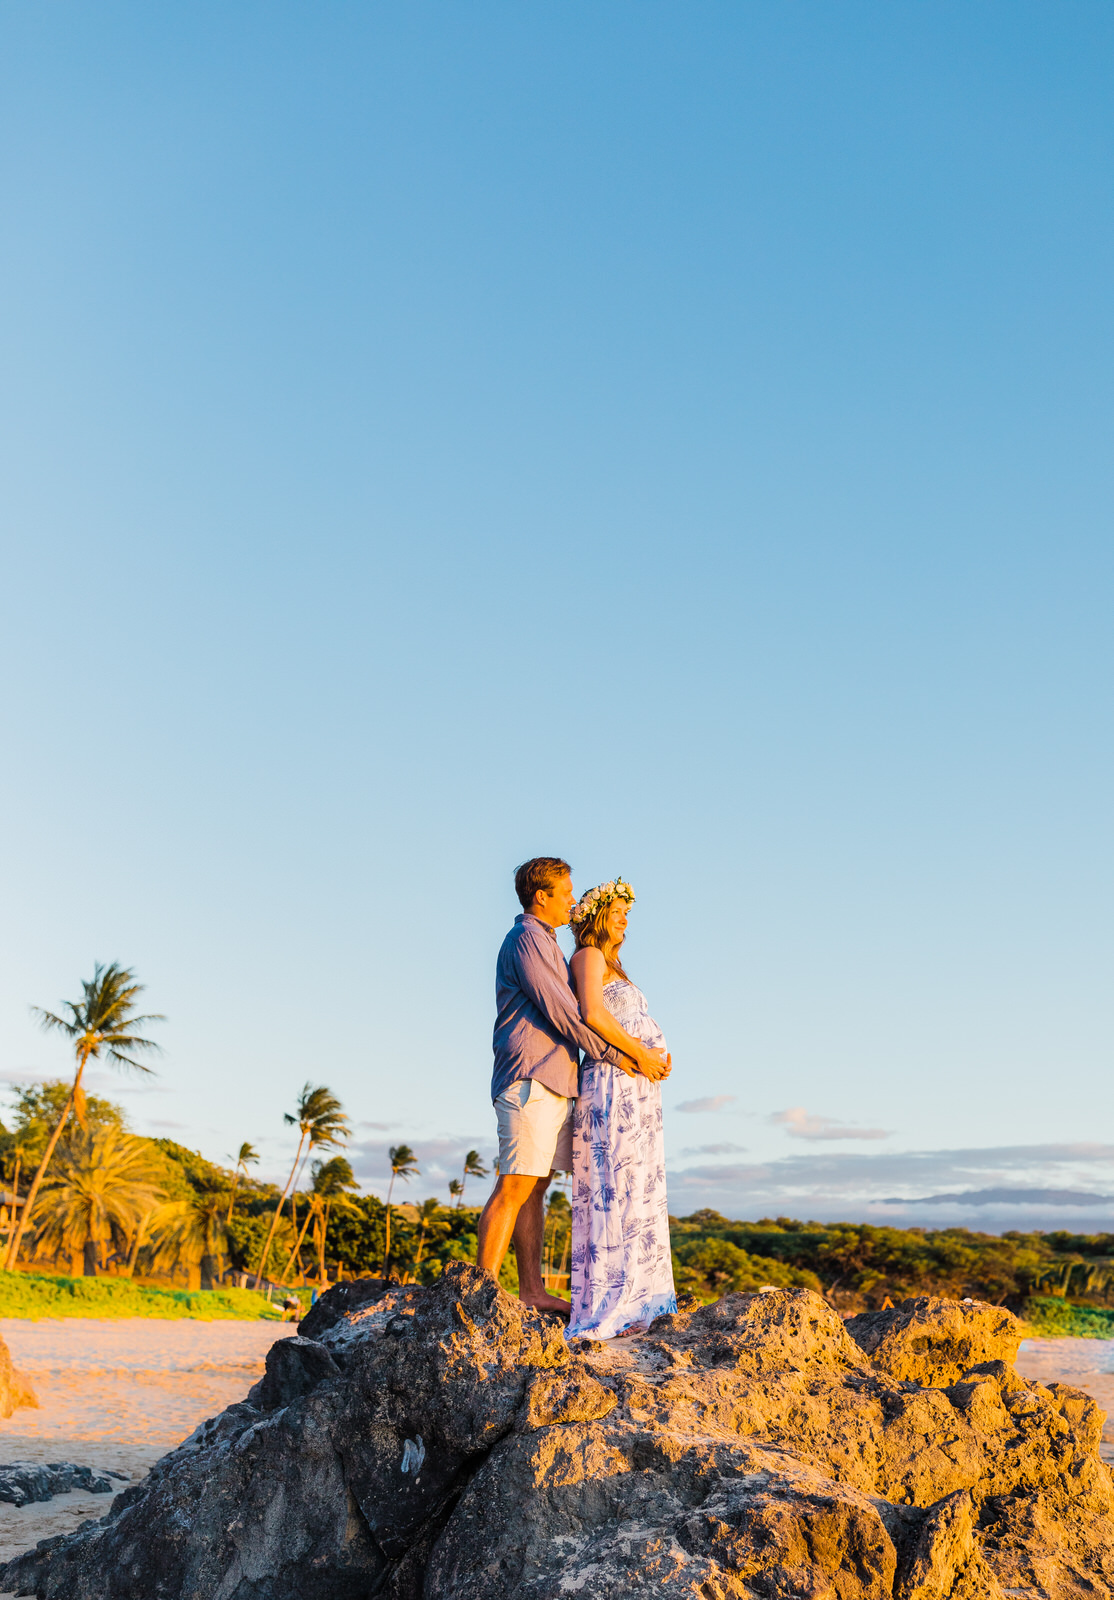 maternity-hawaii-big-island-photography-couple-babymoon-sunset-hapuna-waikoloa-4412.jpg